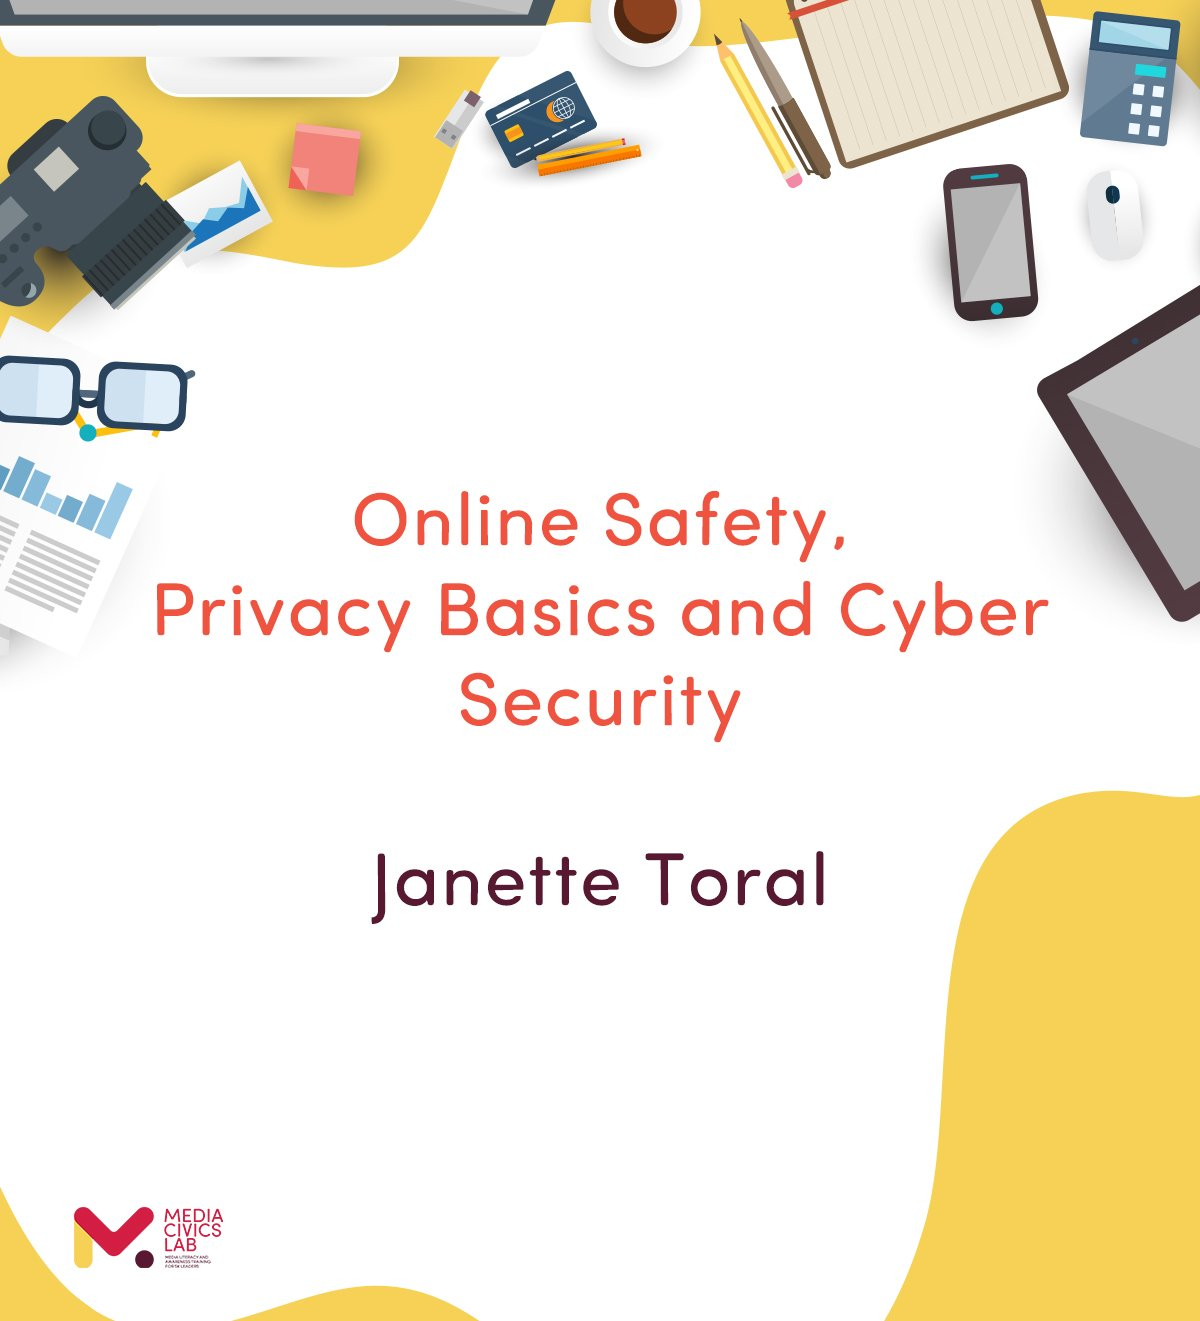 Online Safety, Privacy Basics and Cyber Security – Janette Toral